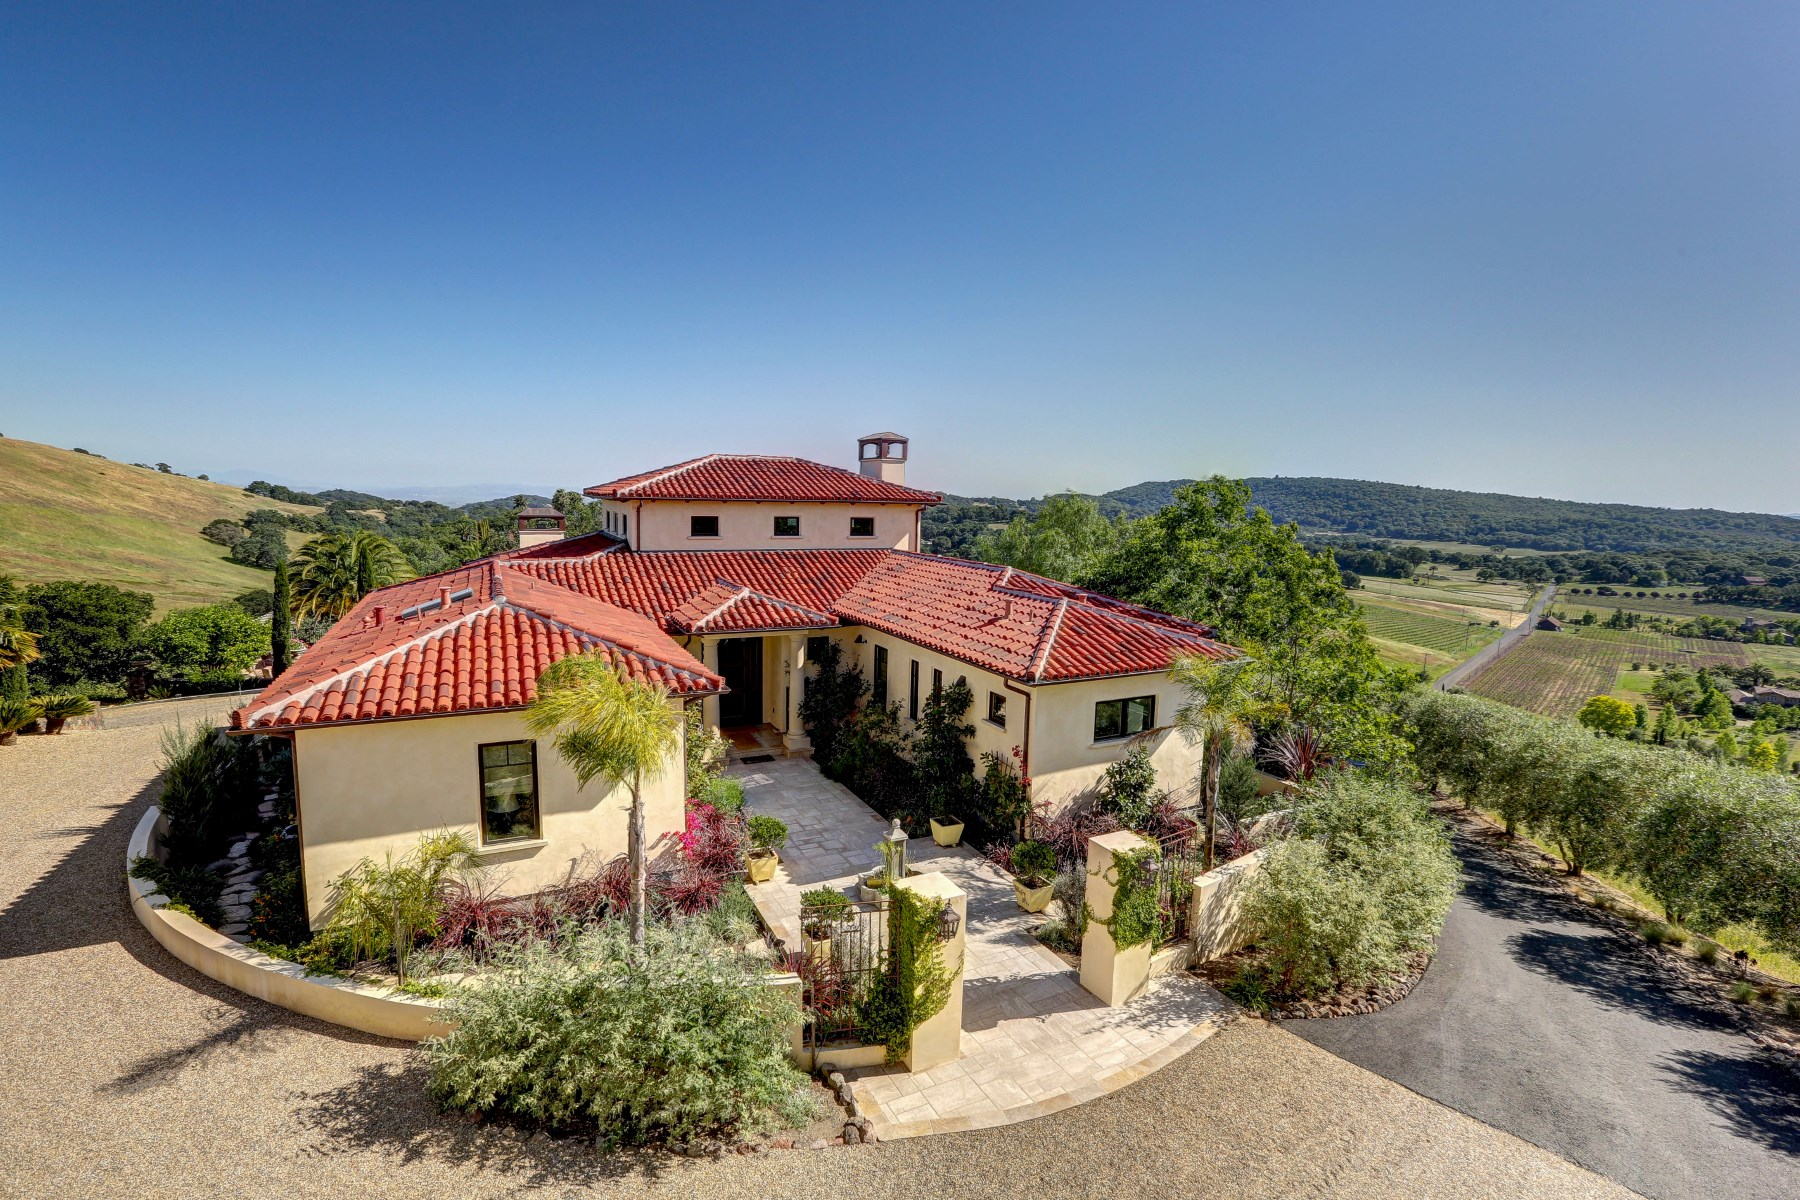 Single Family Home for Sale at Cypress Hill Farm 5180 Lovall Valley Loop Rd Sonoma, California 95476 United States